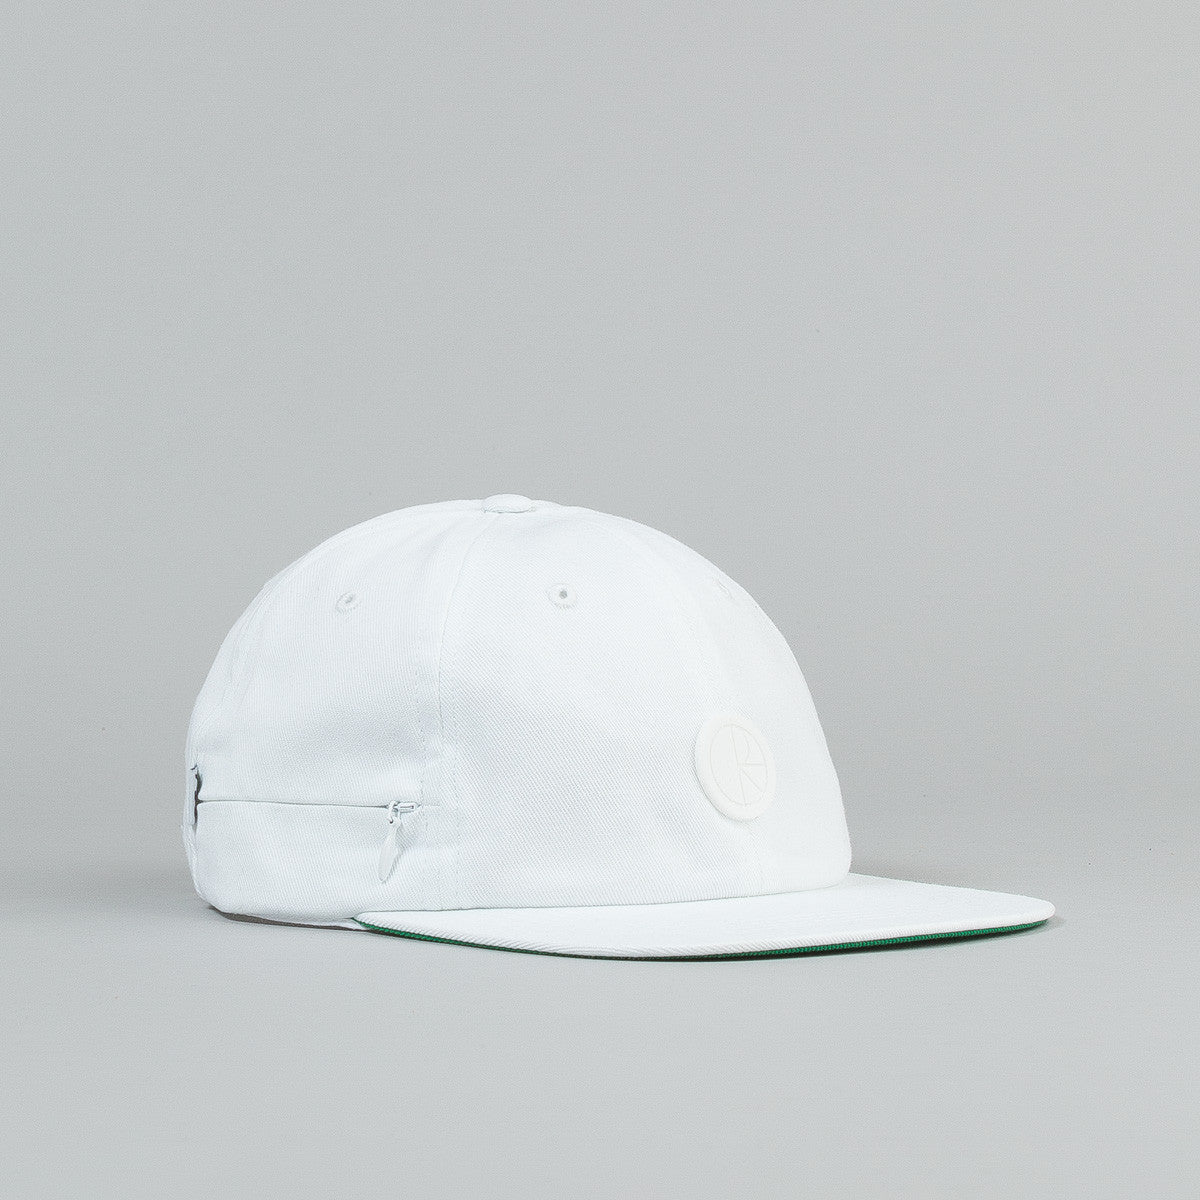 Polar Stash Pocket Cap - White / Green Bottom Brim / White